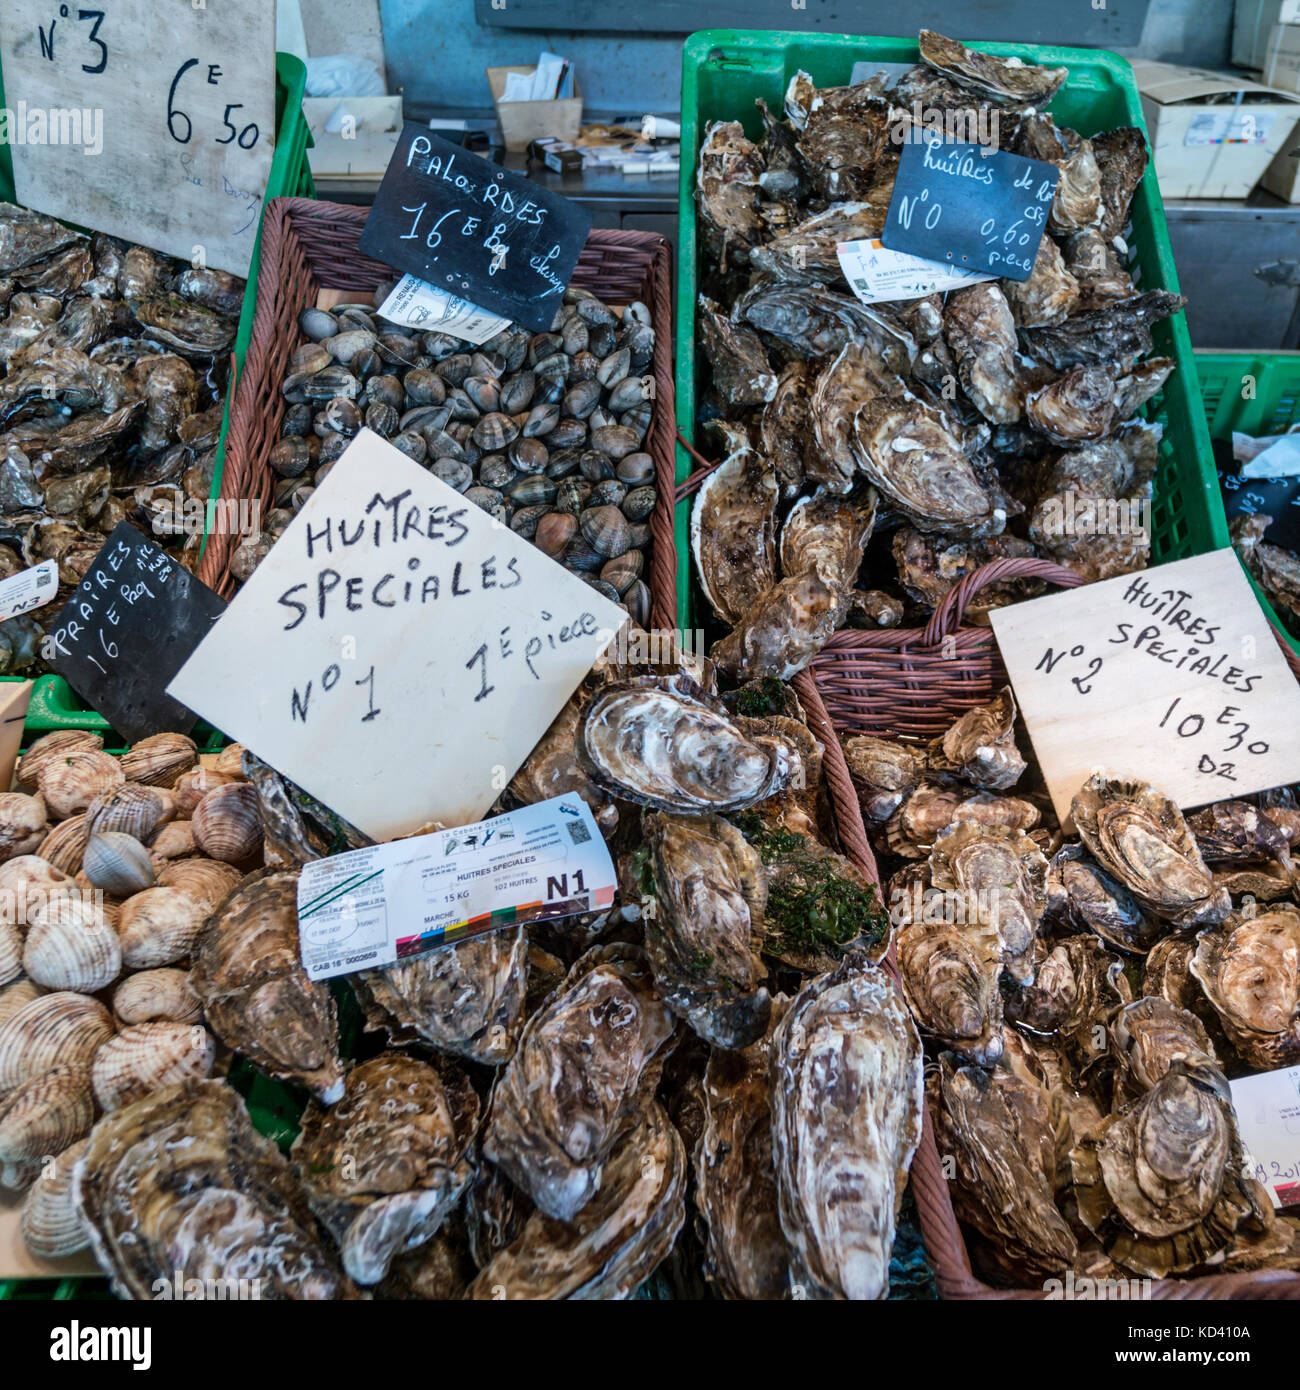 fish market, fruits de Mer, ostery, Huitres, Ile de Re, Nouvelle-Aquitaine, french westcoast, france, - Stock Image